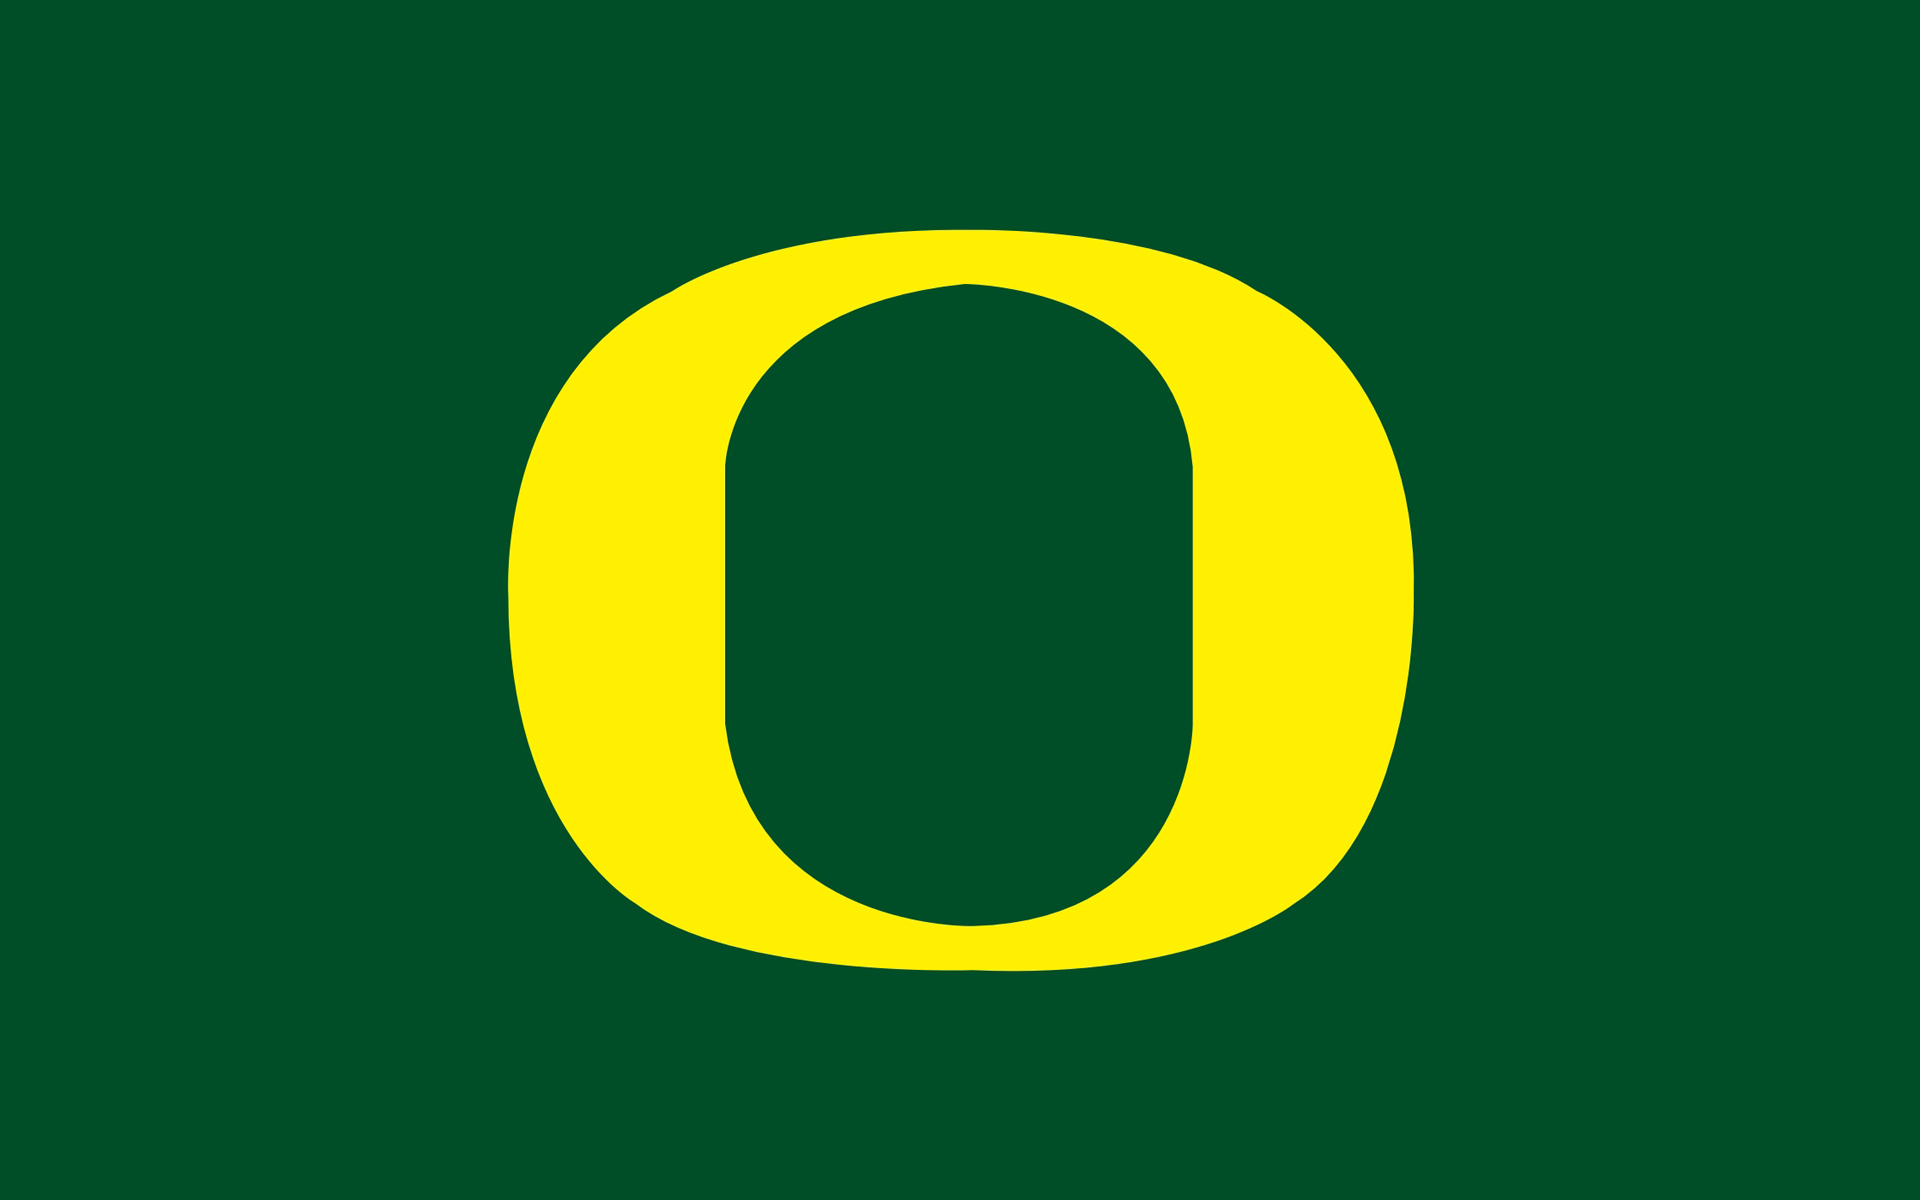 Oregon Ducks Stadium Wallpaper Desktop Background.